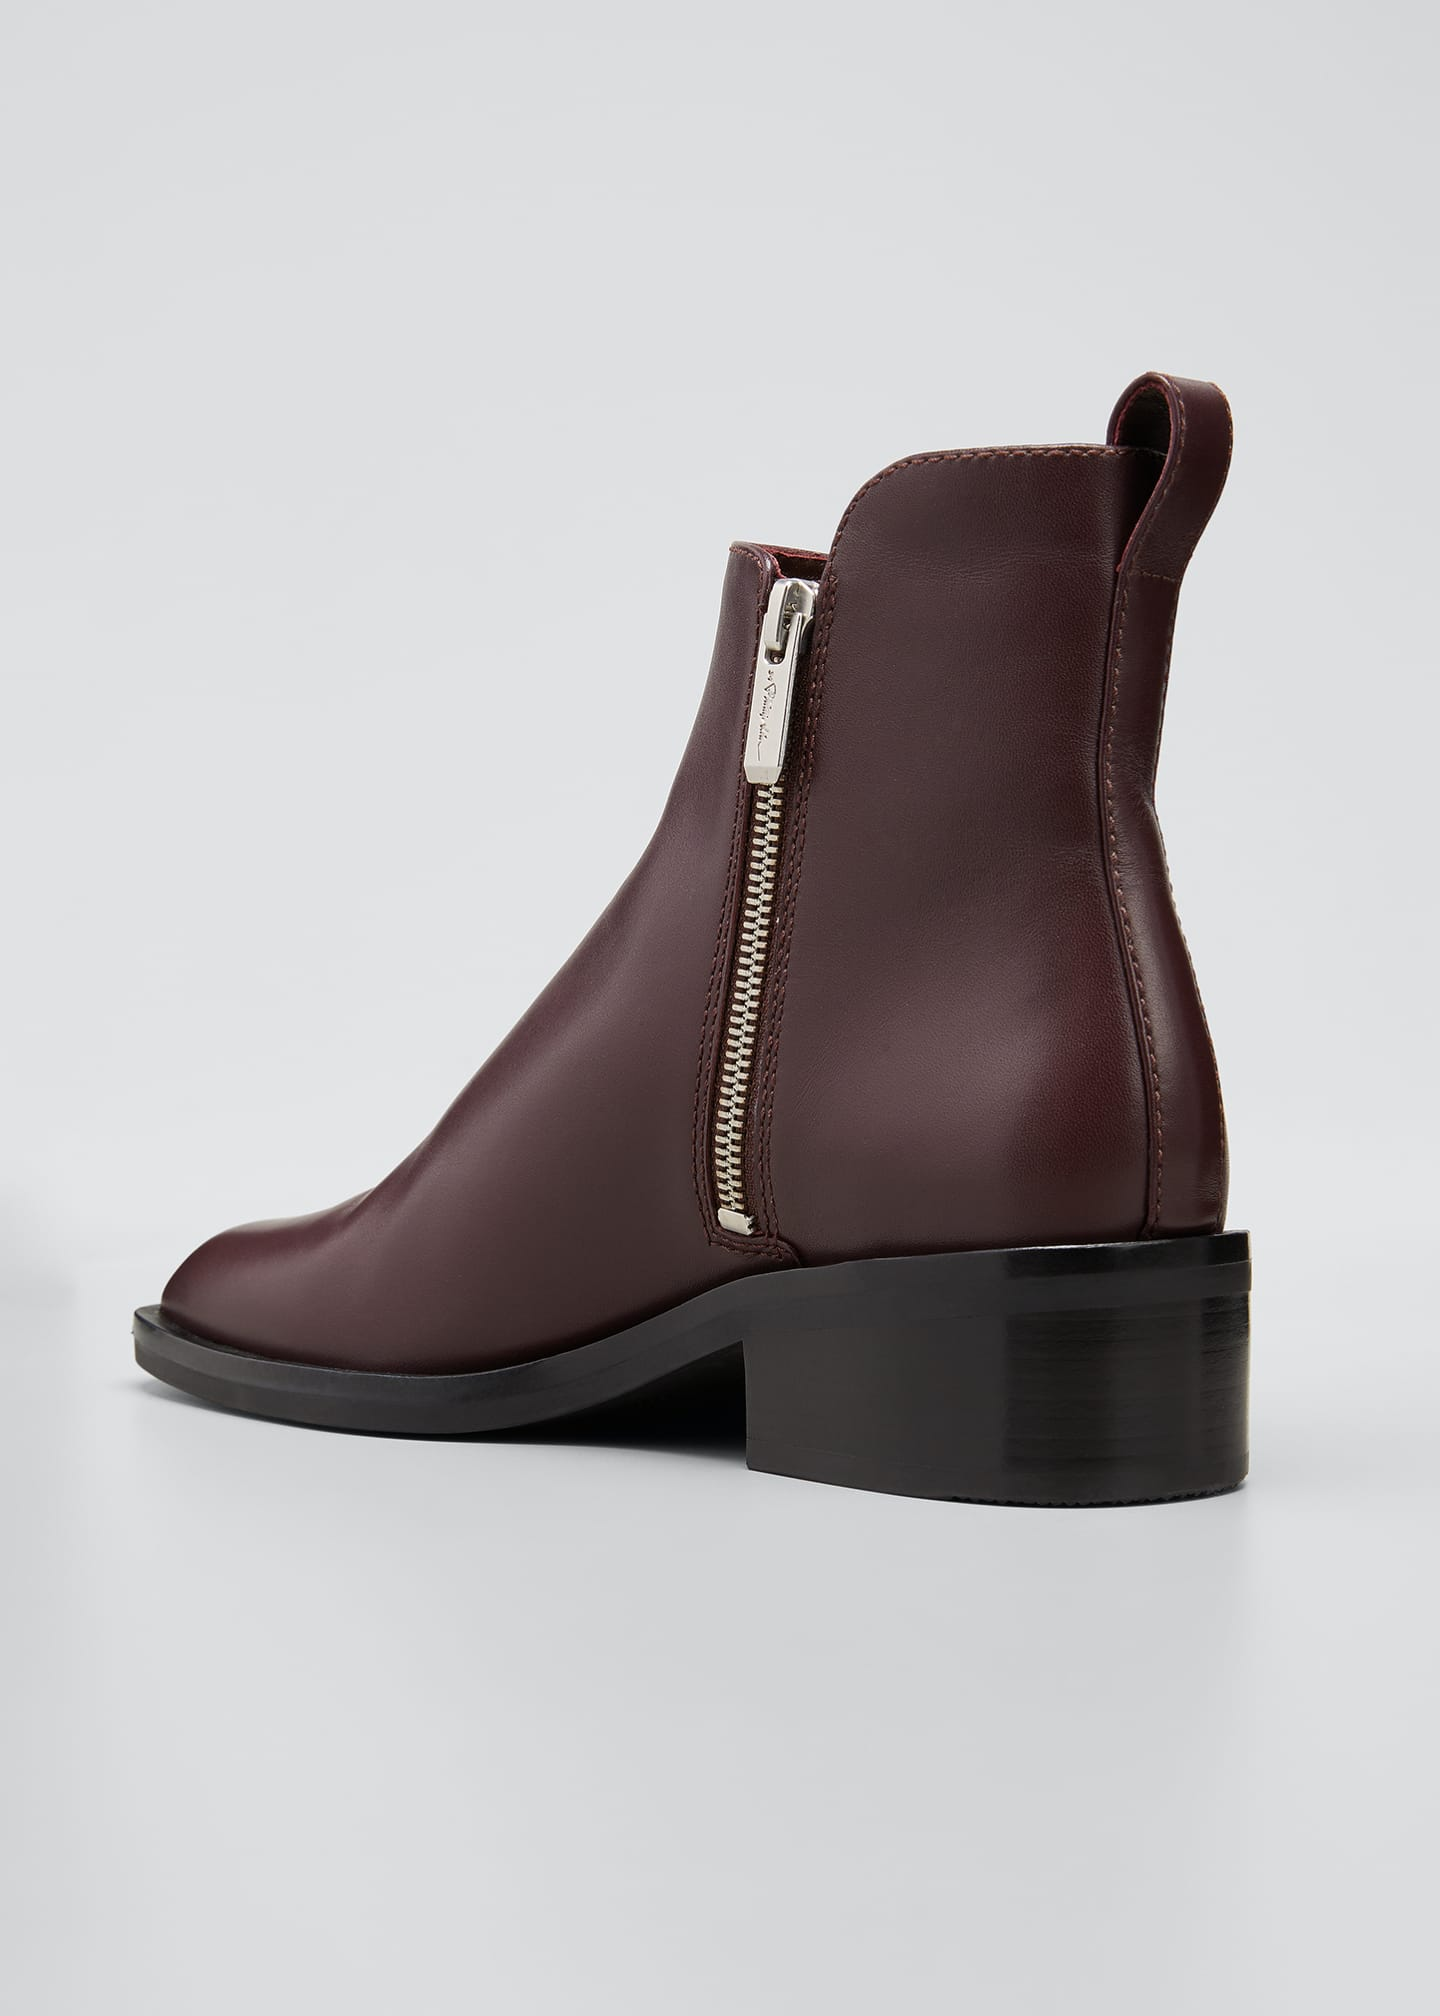 Image 2 of 3: Alexa Dual Zip Ankle Boots